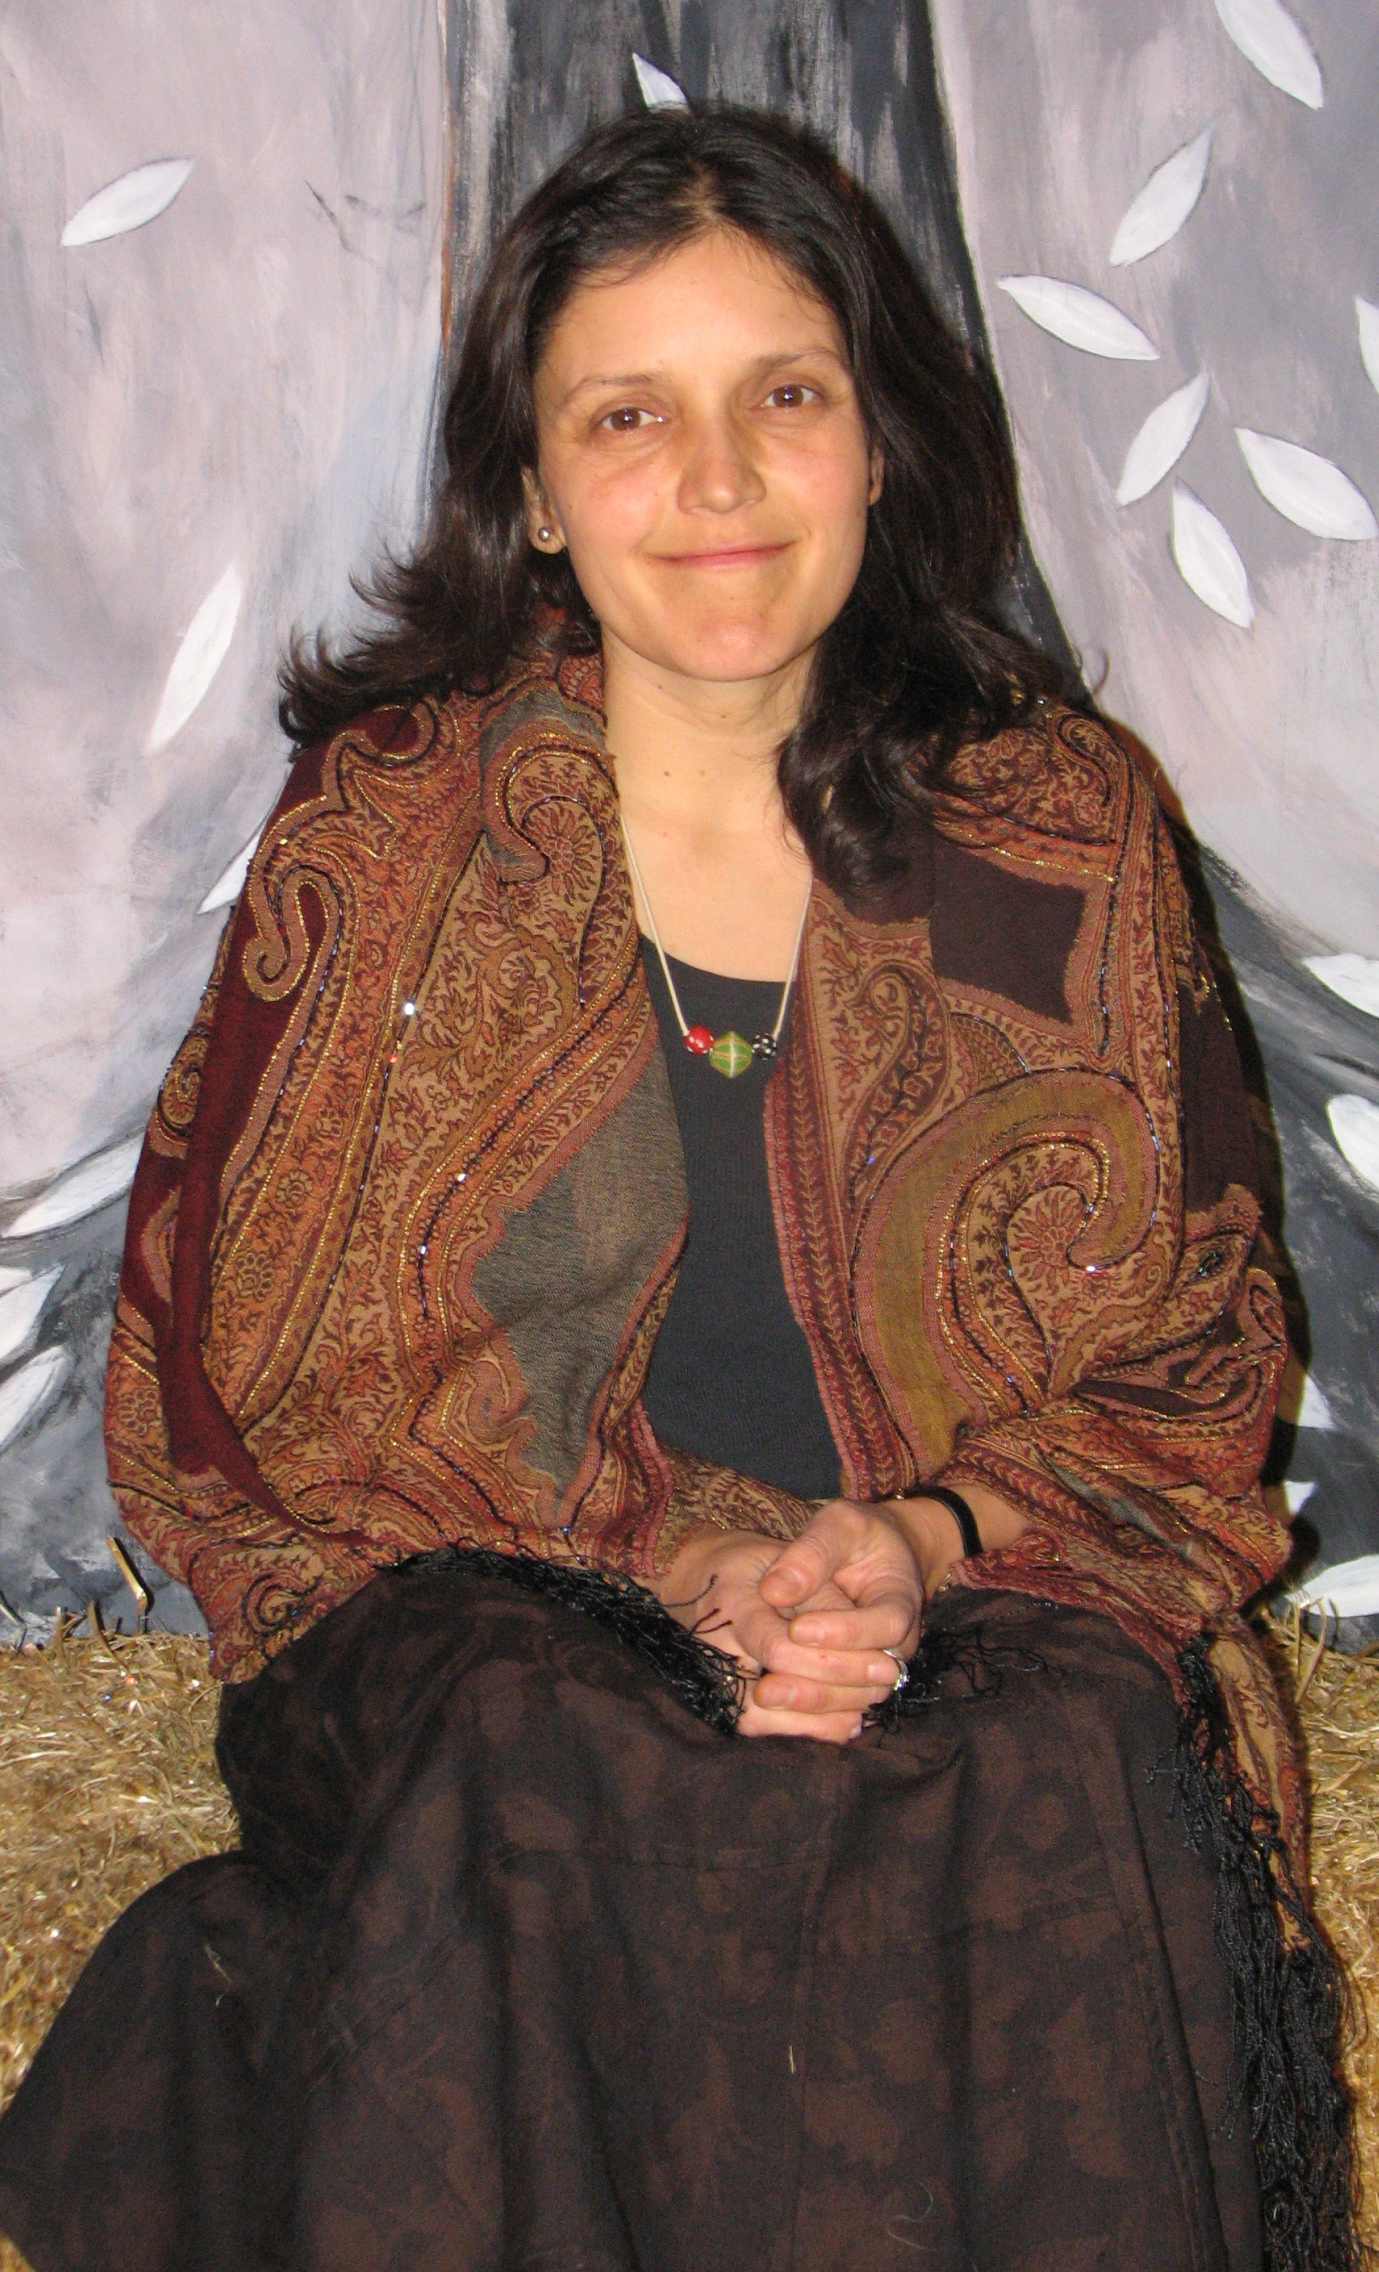 Luz Elena, pronounces LUCE EL  LAY  NAH, sitting in front of the set of The Night Passage, from Gathering in Gratitude, 2010, Painting by John Loggia.